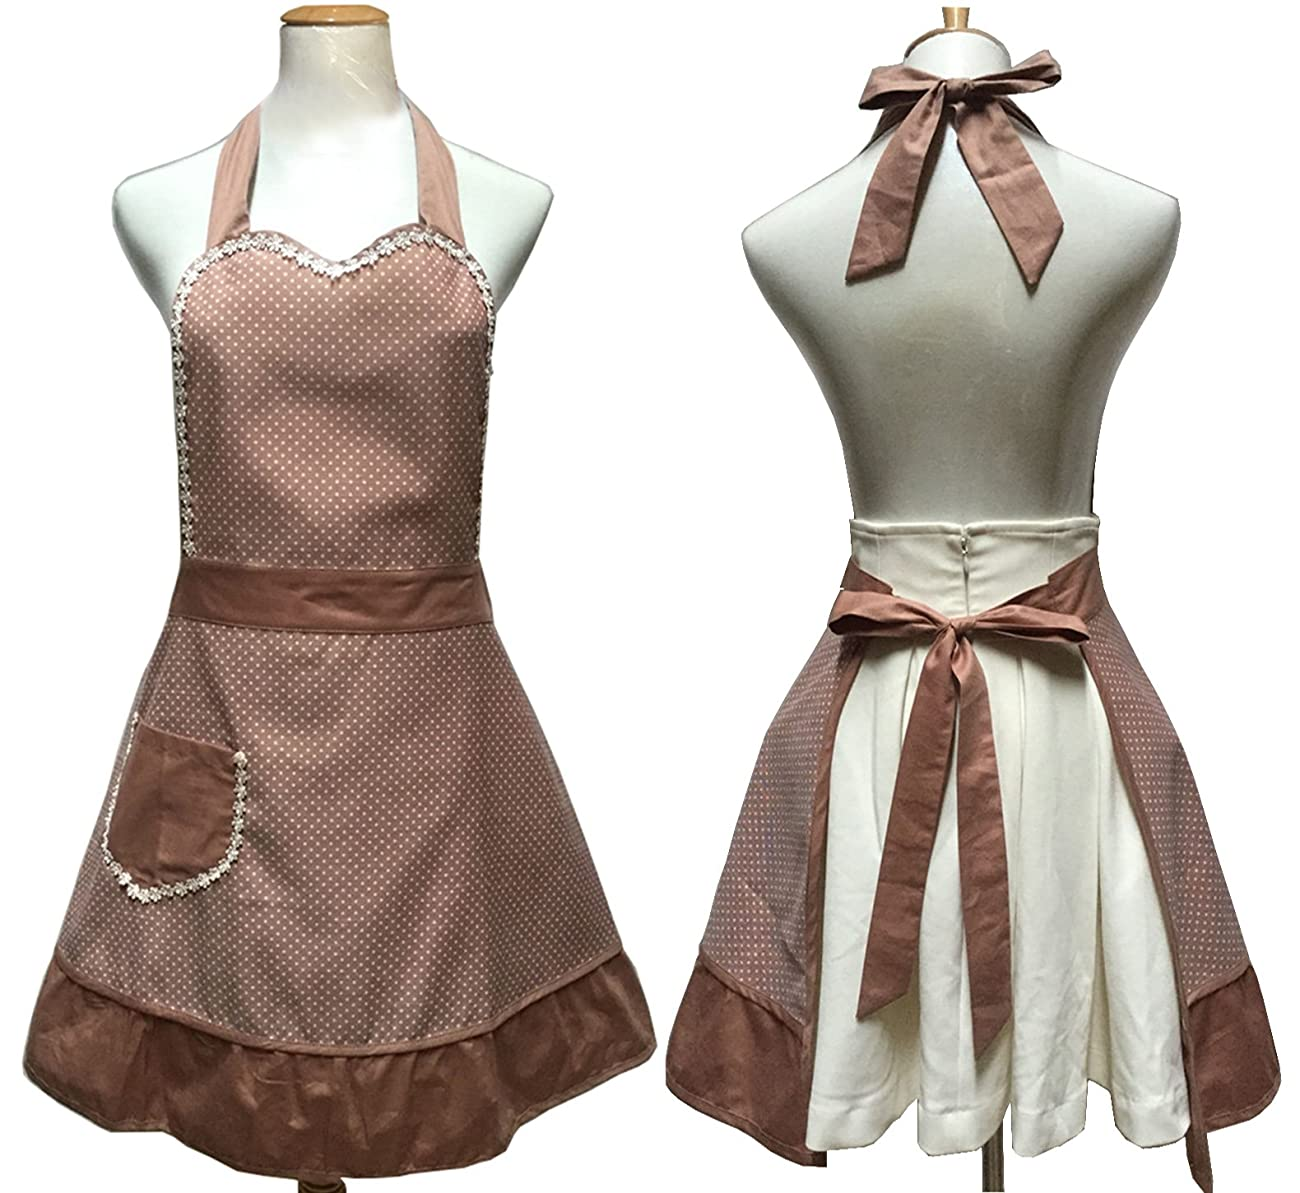 Lovely Sweetheart Retro Kitchen Aprons Woman Girl Cotton Cooking Salon Pinafore Vintage Apron Dress with Pocket,Brown 0